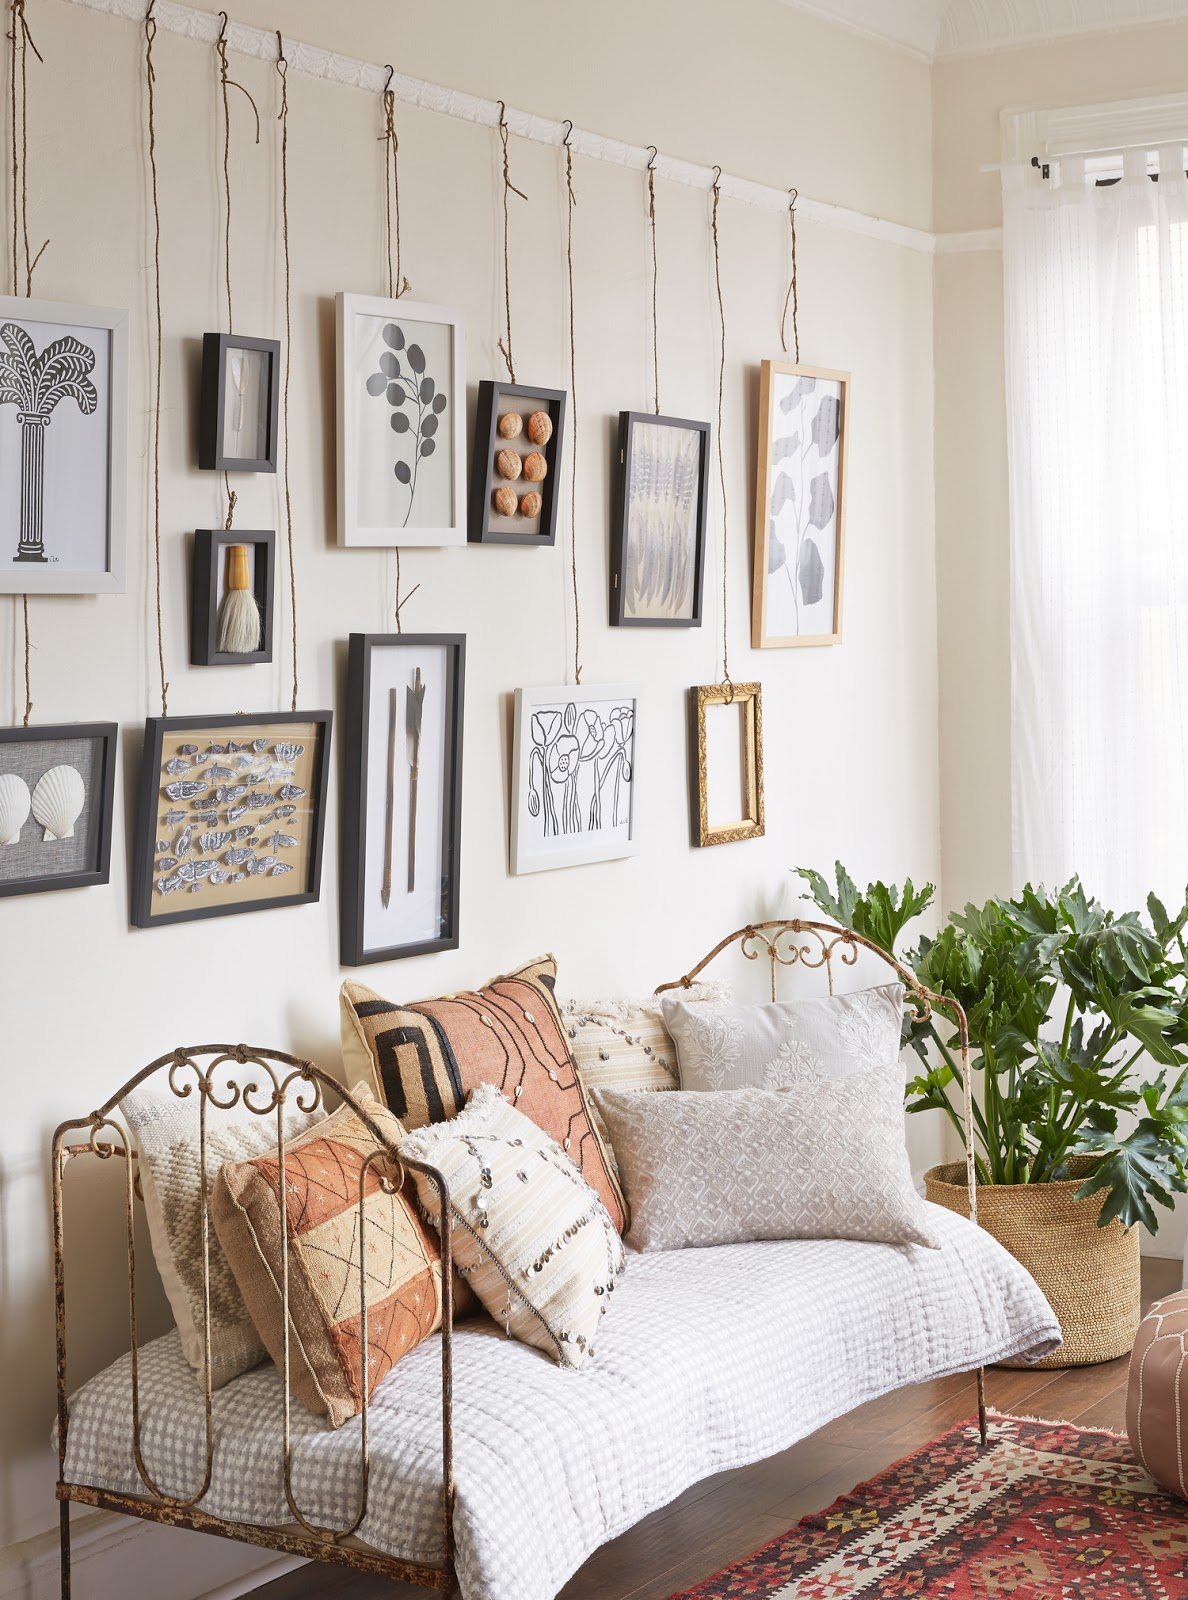 12 Ideas to Have The Best Rustic Gallery Wall on Picture Hanging Idea  id=75845